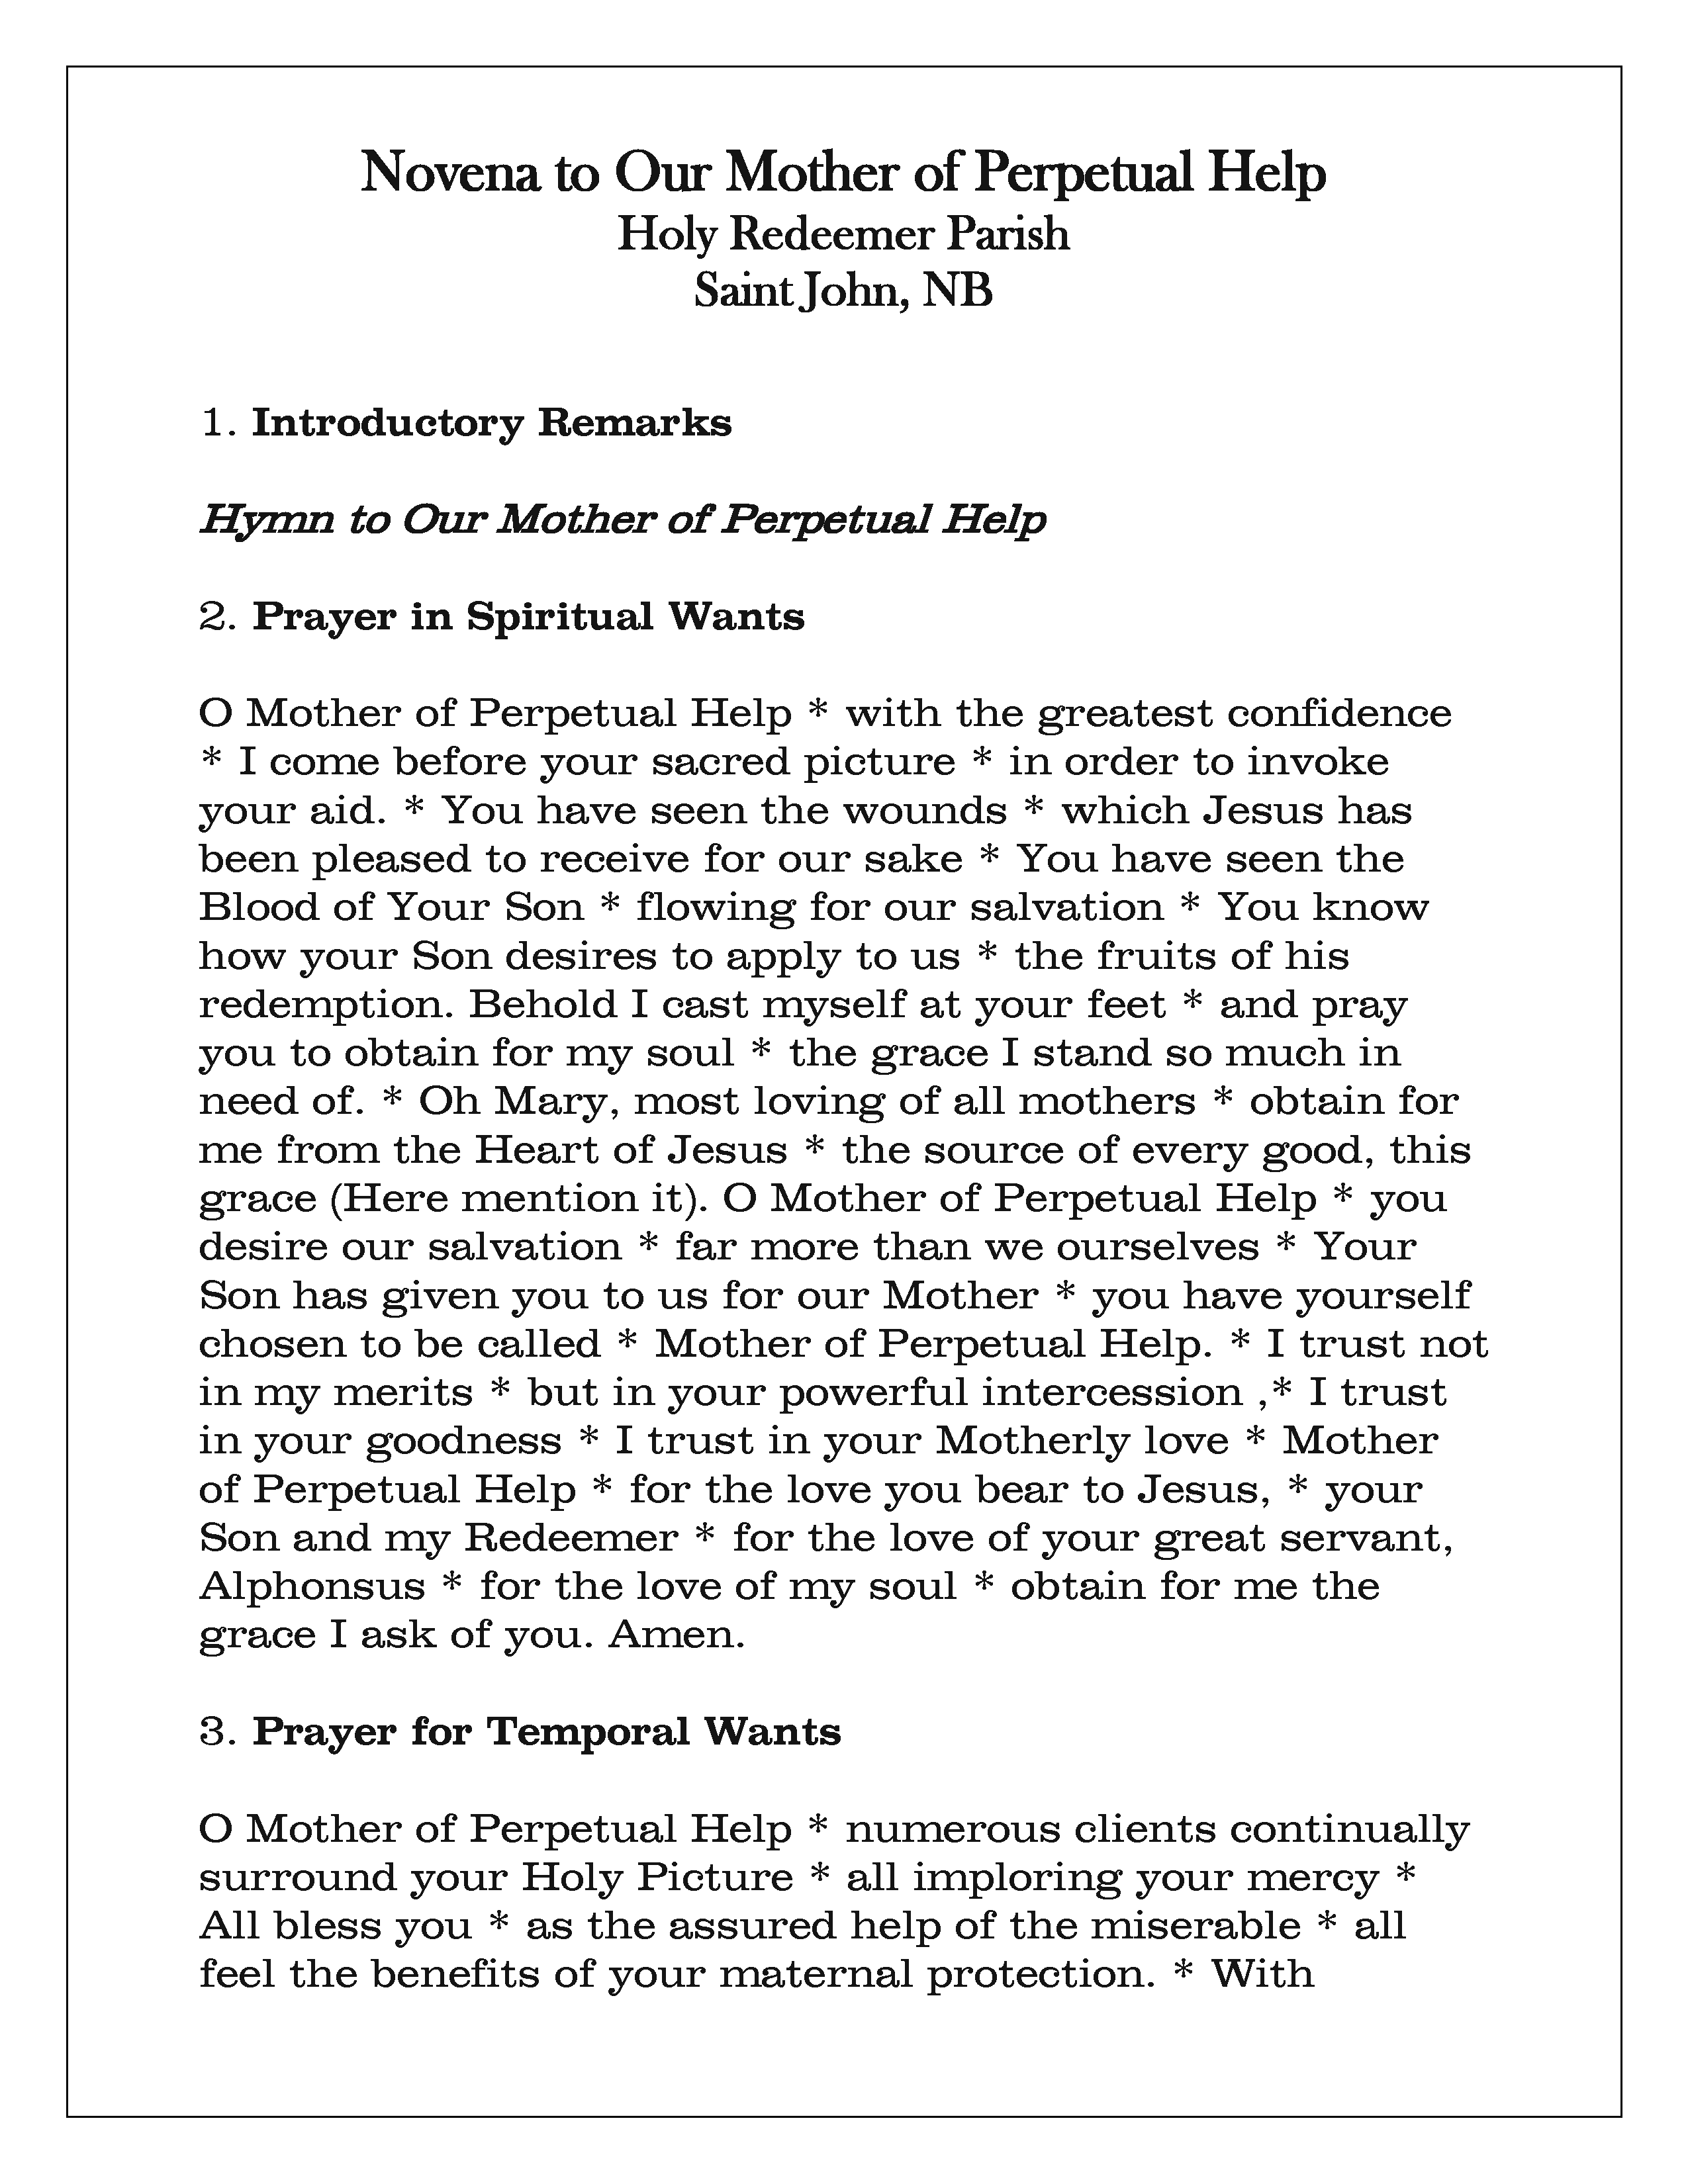 Novena Prayer Card (Revised)